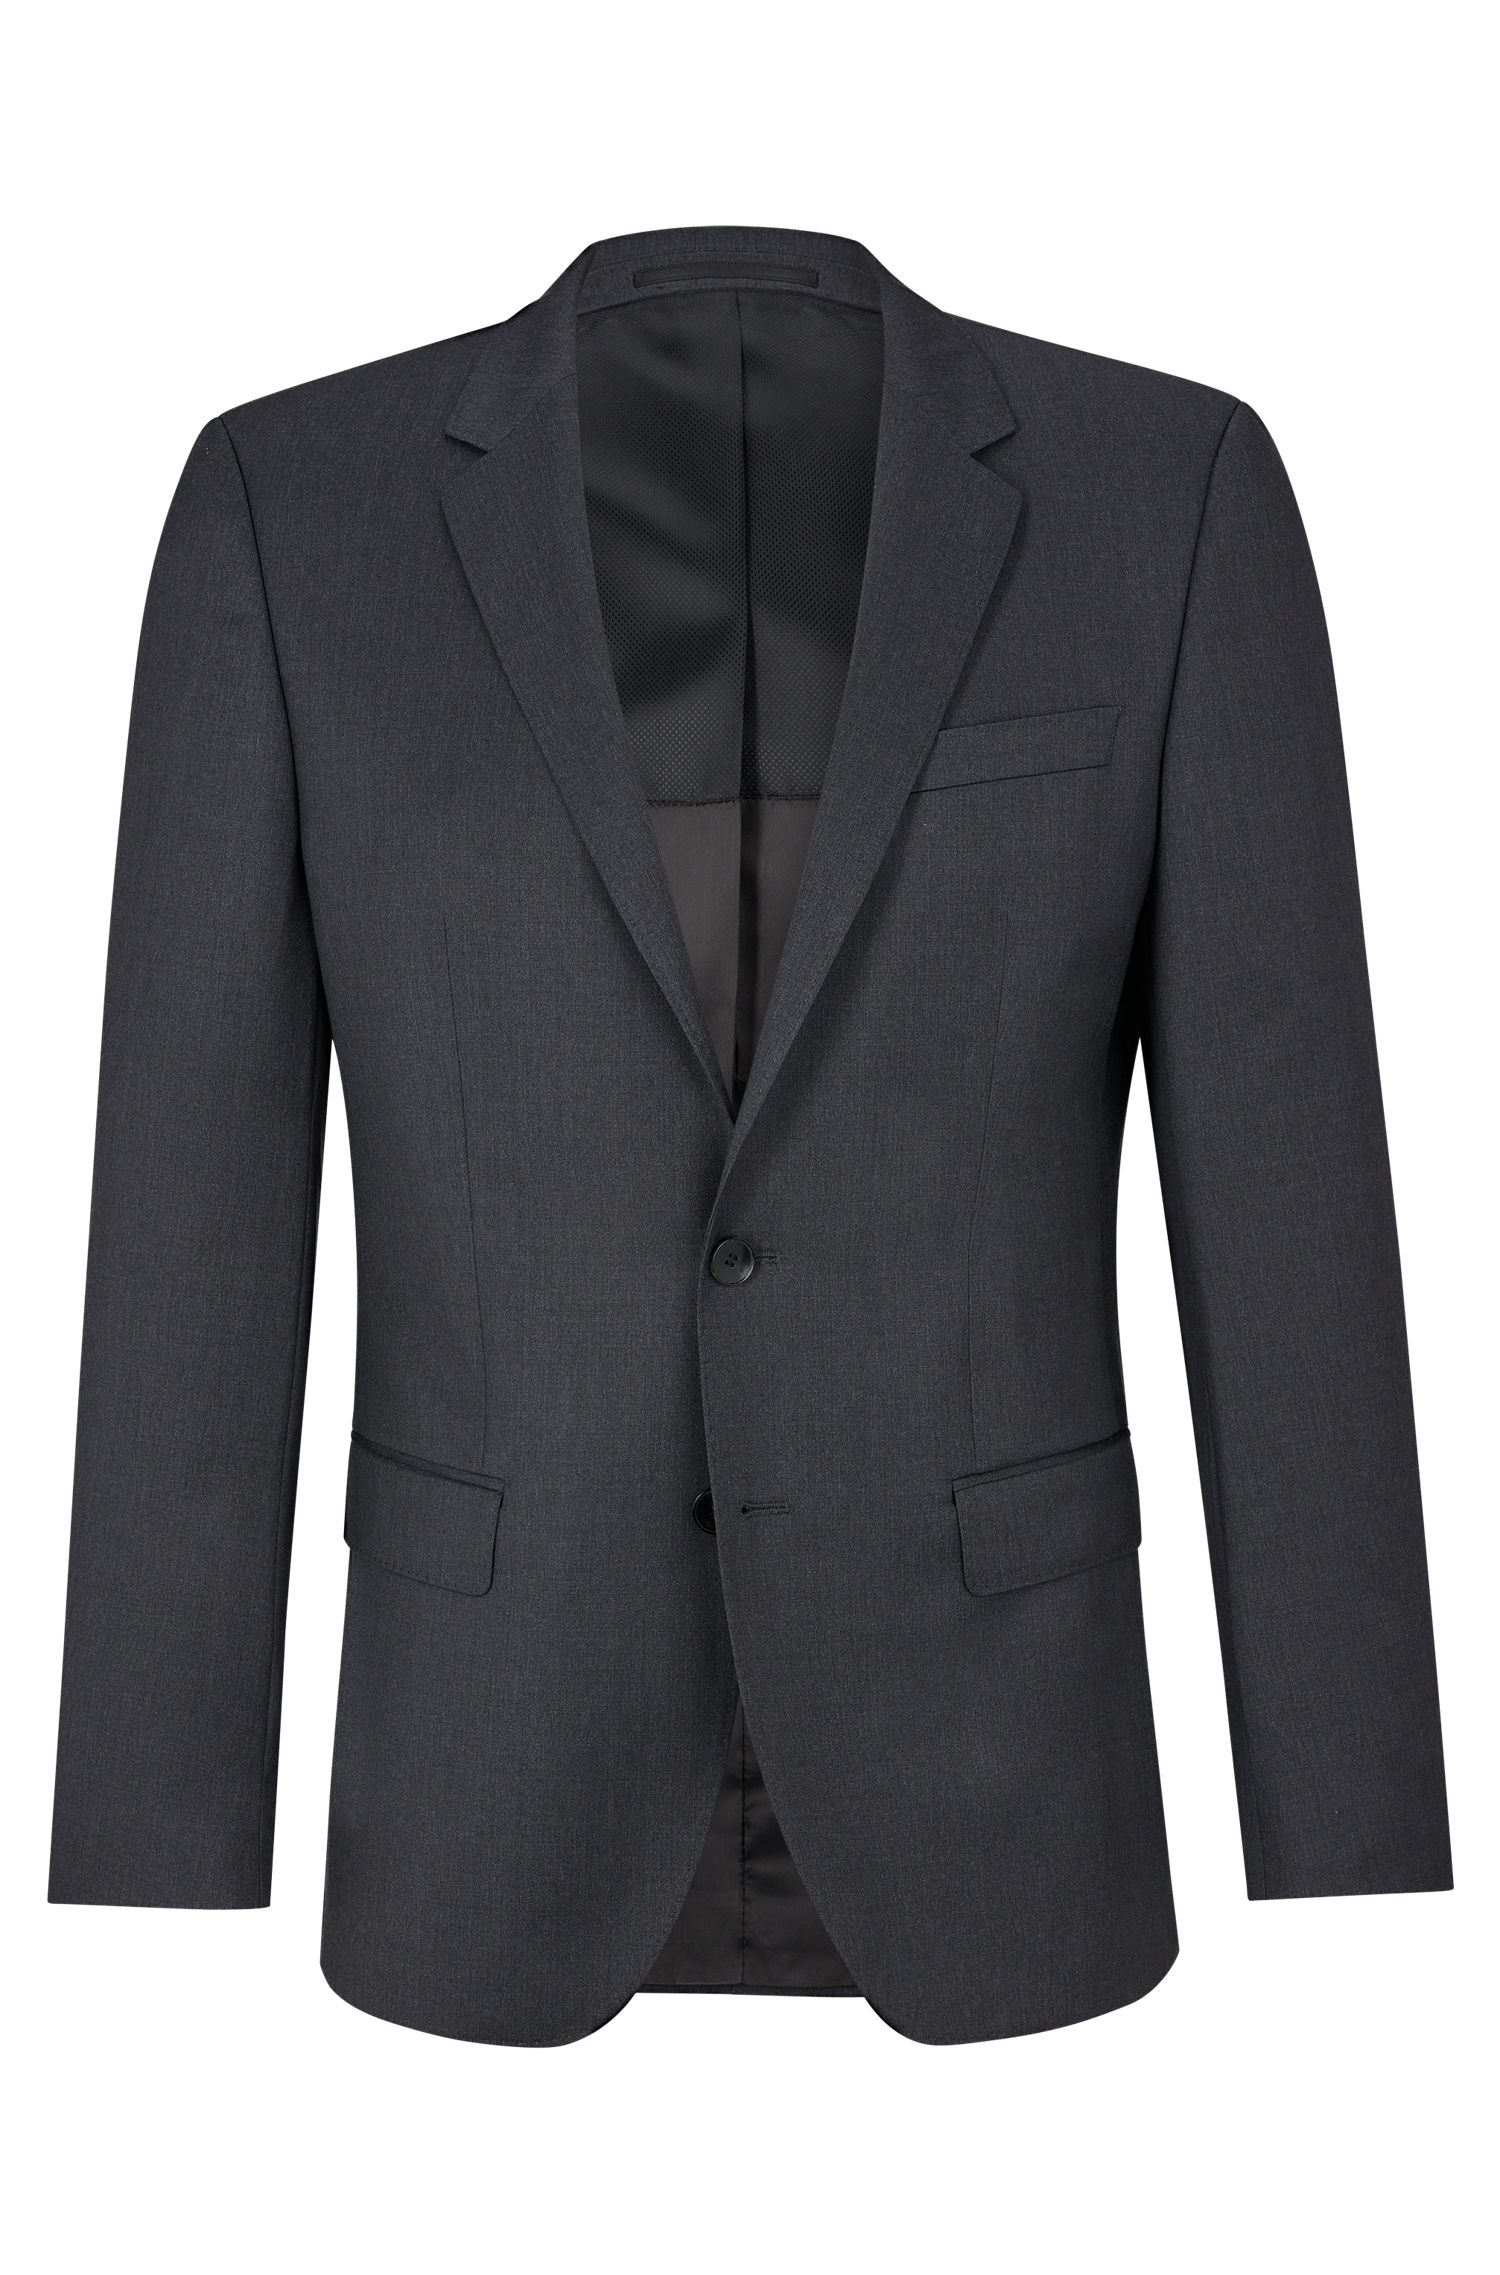 Italian Virgin Wool Sport Coat, Slim Fit | Hayes CYL, Dark Grey